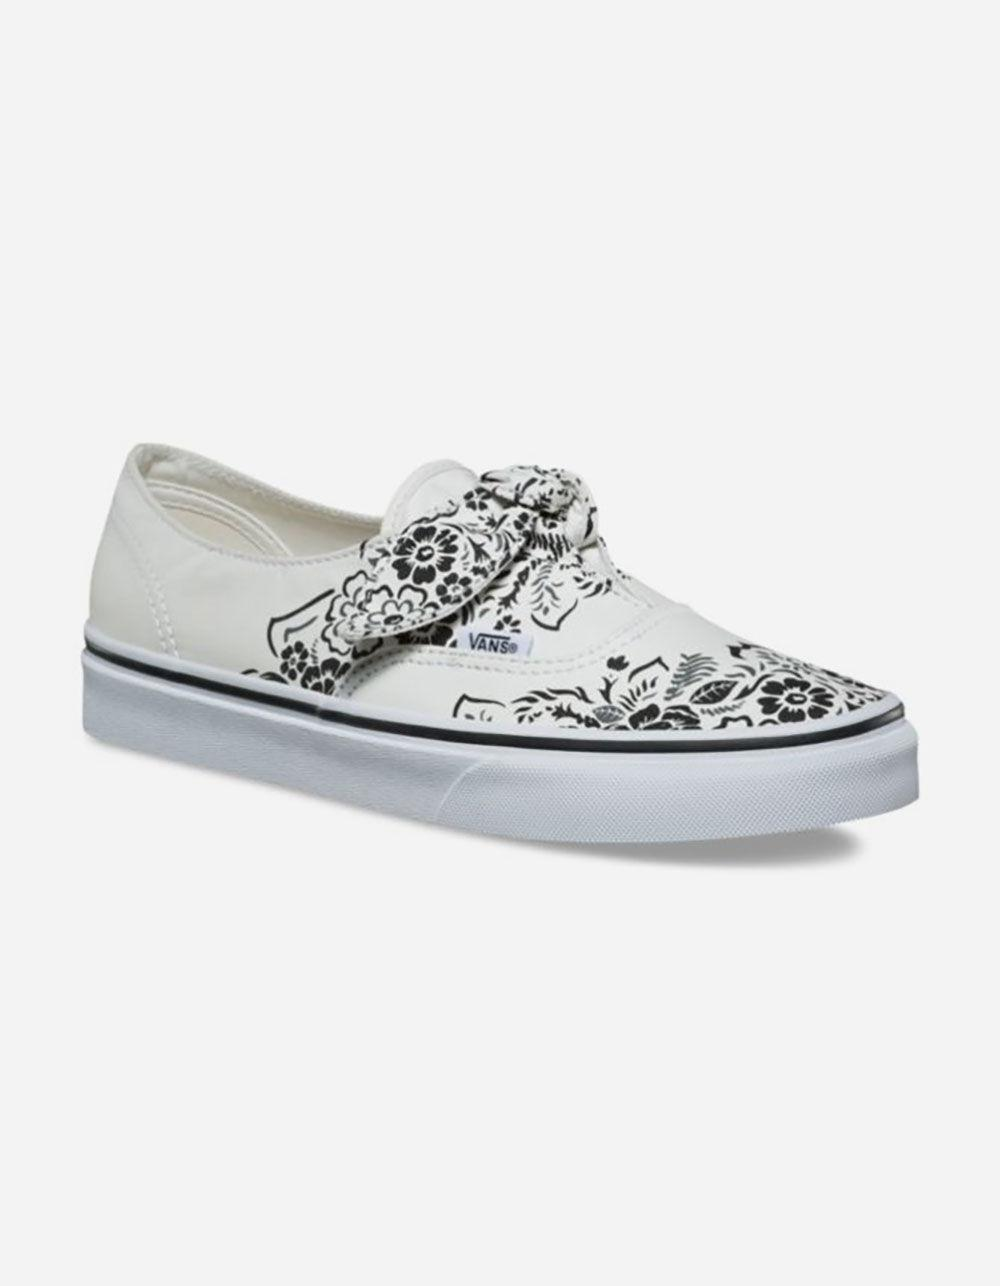 641f02a1d5 Lyst - Vans Authentic Floral Bandana Knotted Marshmallow Womens Shoes